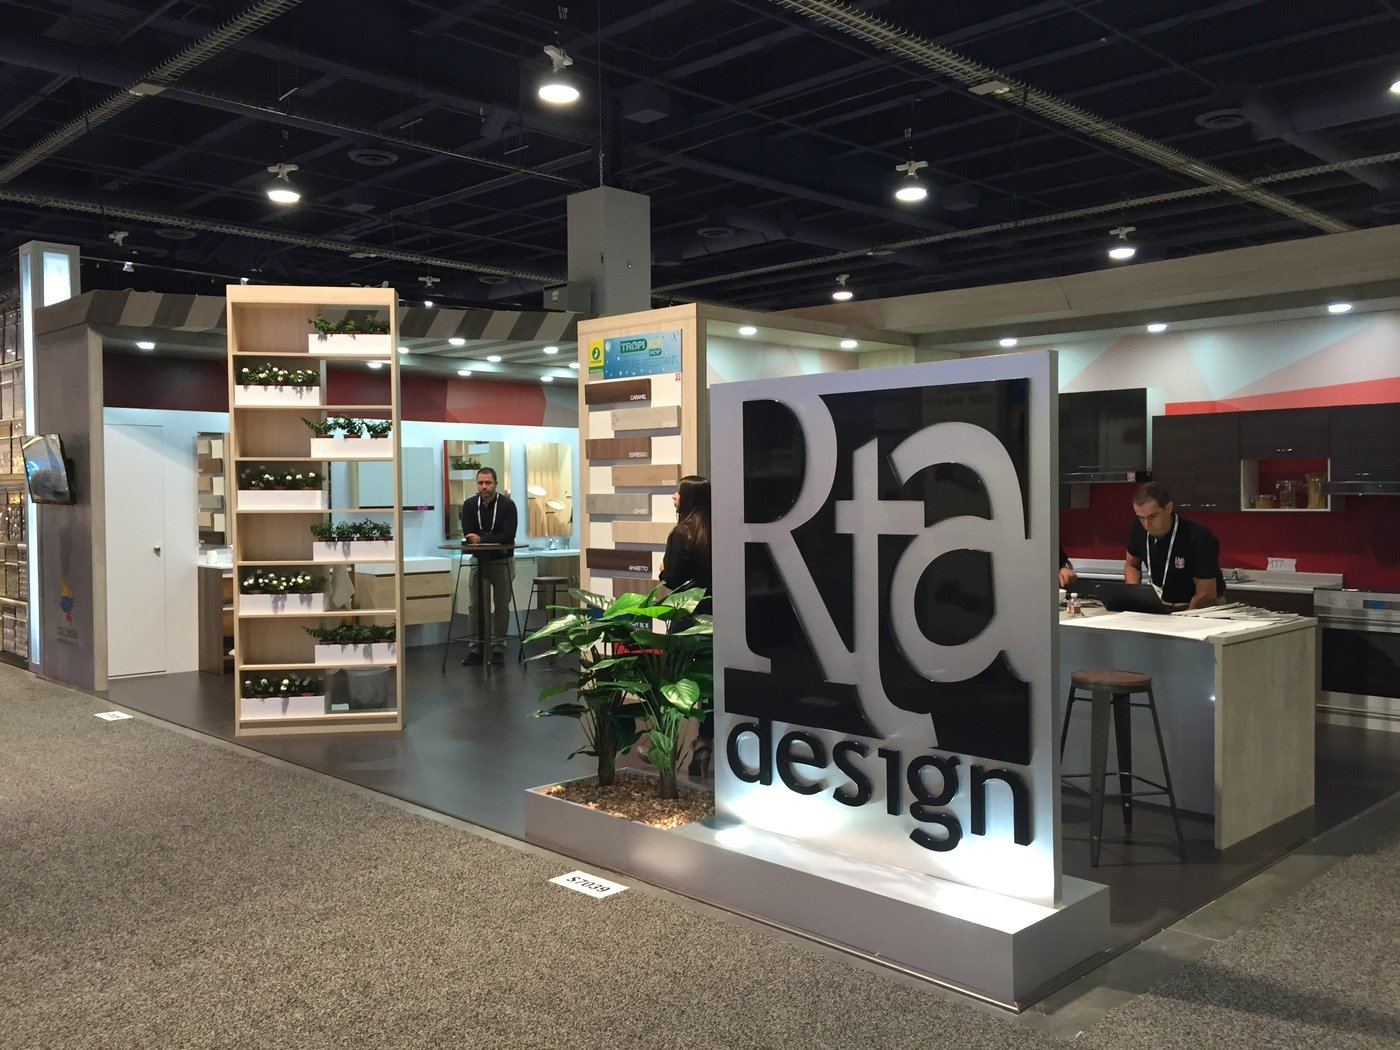 Exhibition stand design by carlos daniel negrete at for Kitchen and bath show las vegas